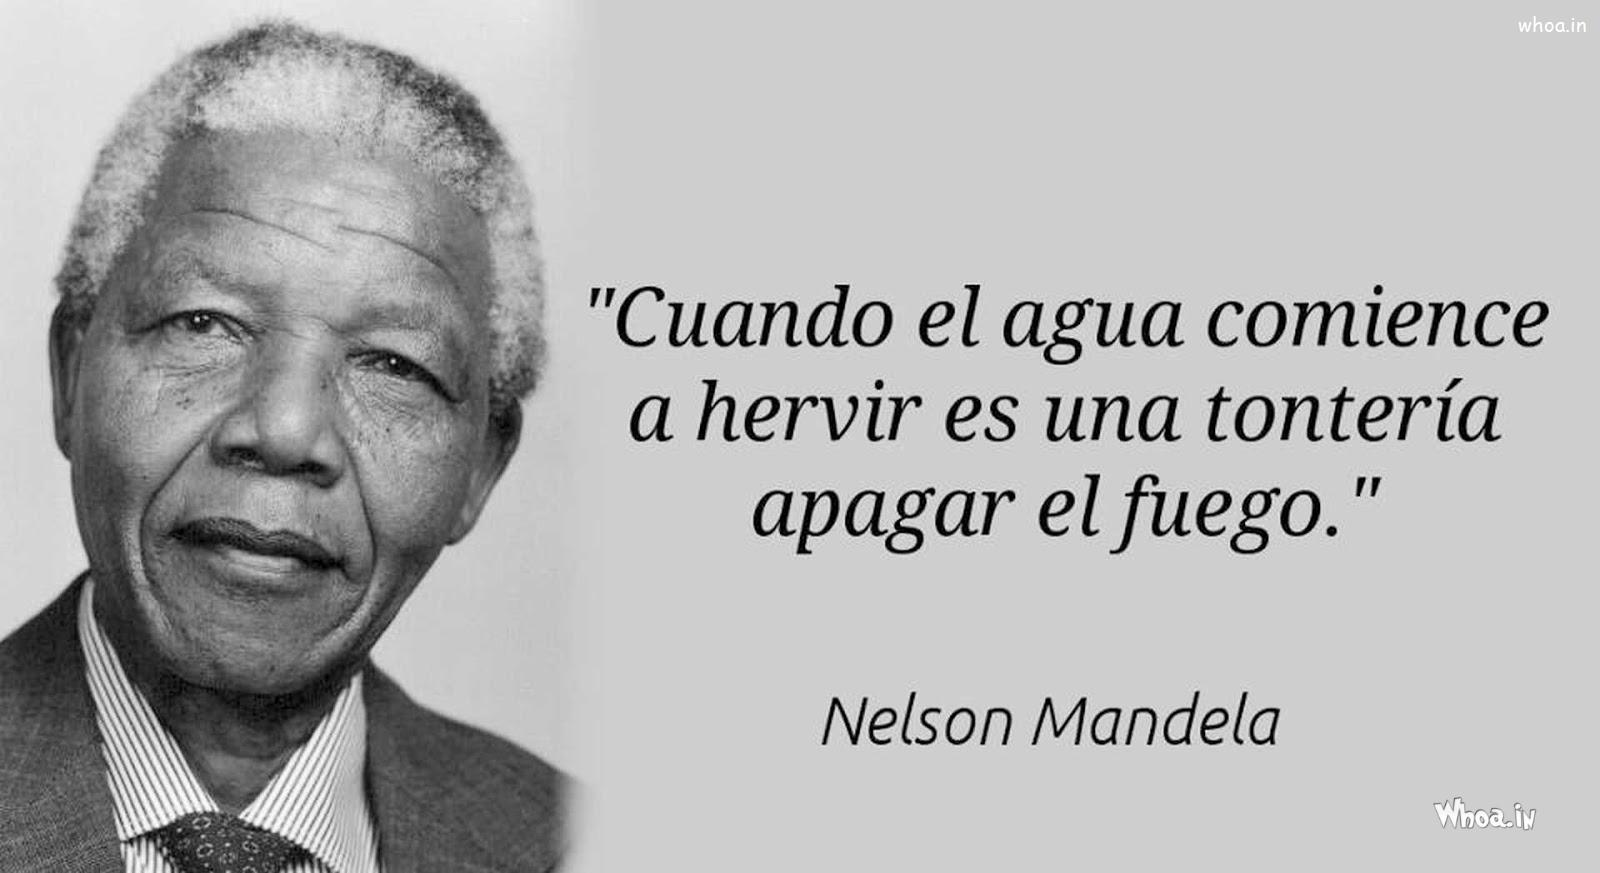 Quotes Nelson Mandela Nelson Mandela Leadership Quotes